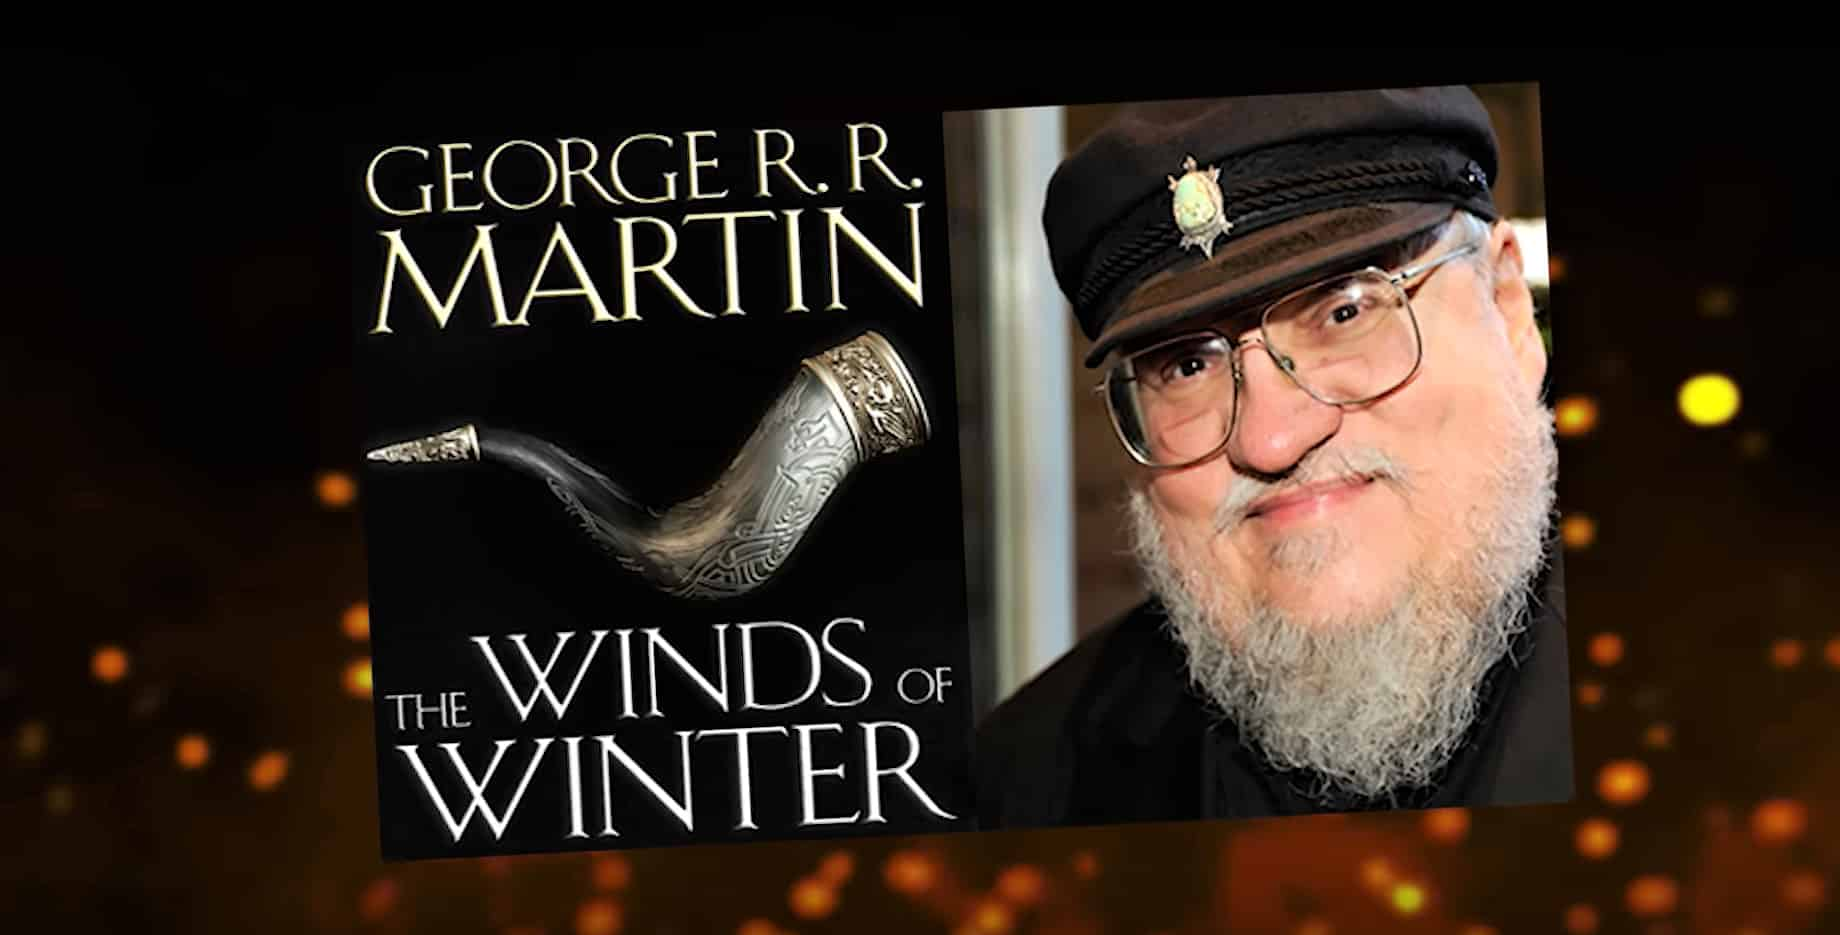 George RR Martin on The Winds of Winter Progress